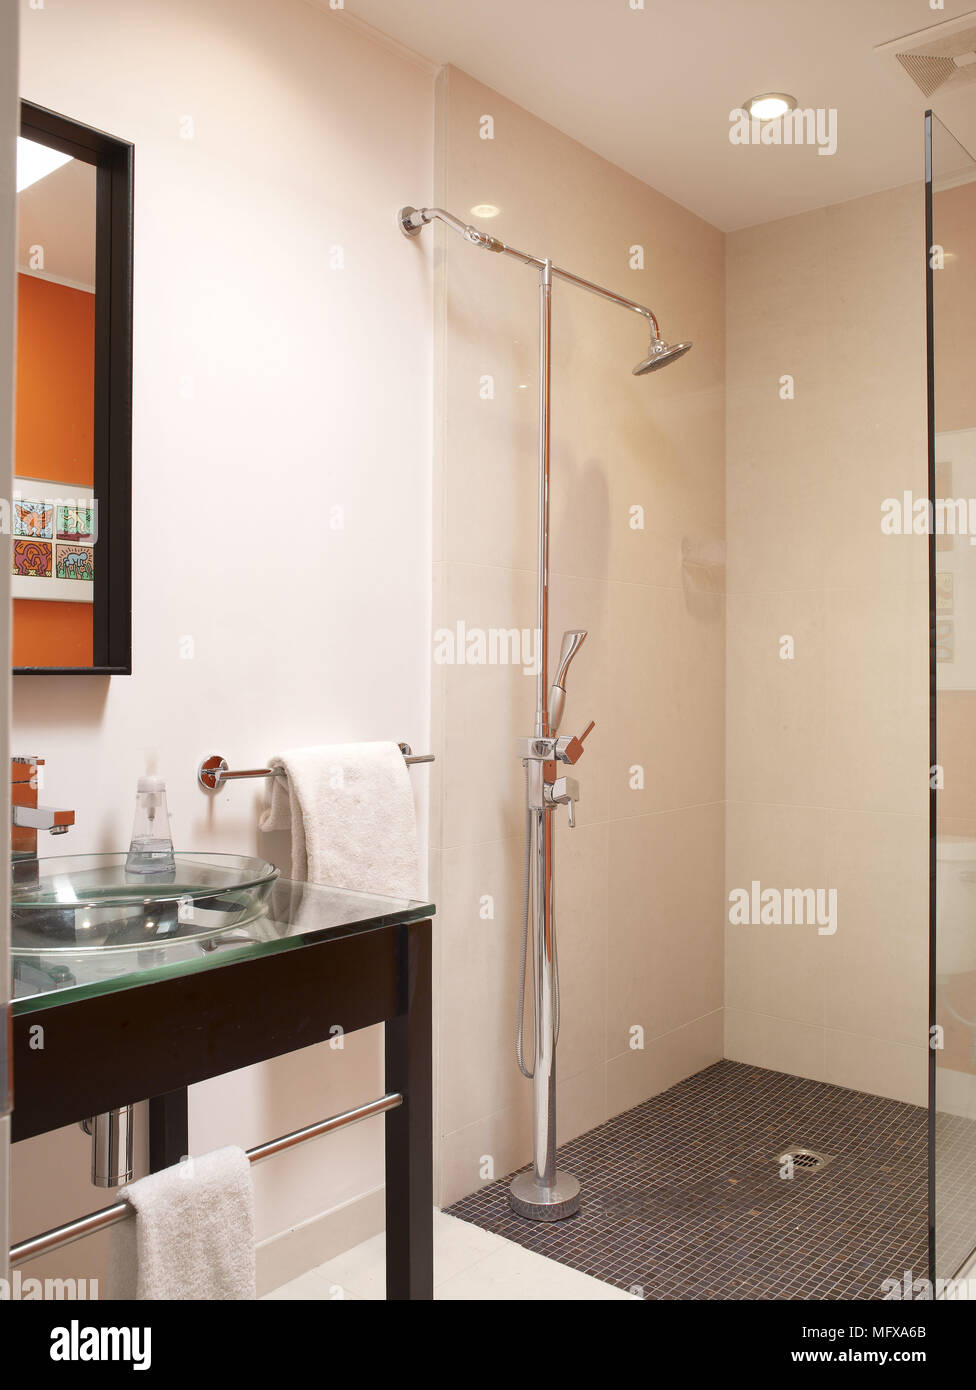 Glass Washbasin On Table Next To Shower Area In Modern Bathroom Stock Photo Alamy